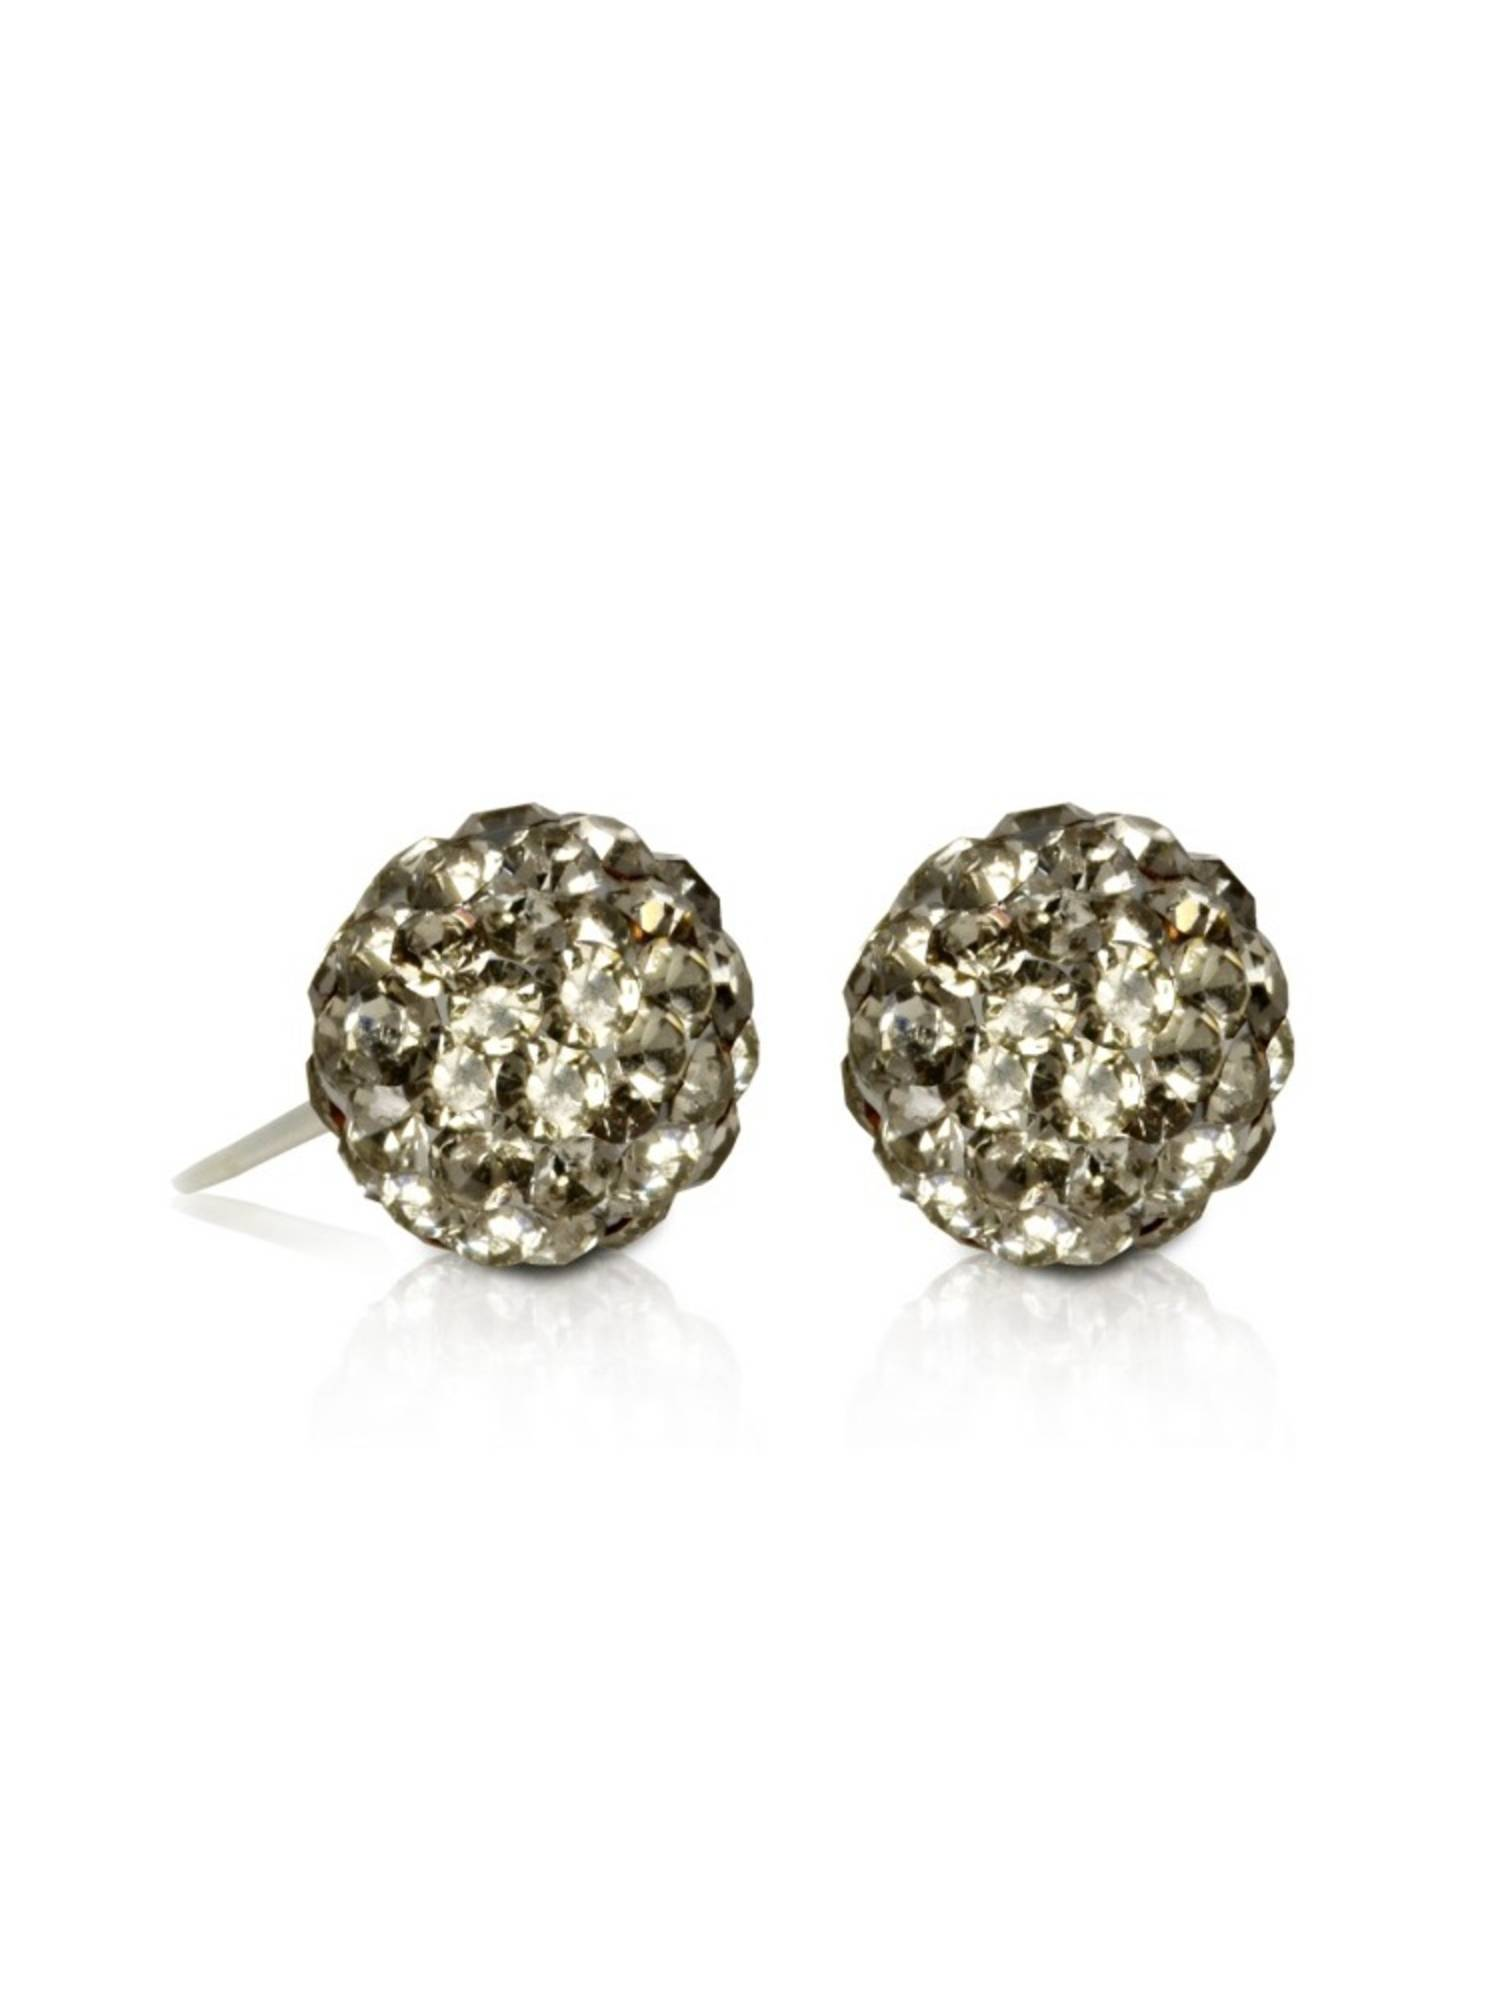 Sterling Silver Stunning Brown Pave Crystal Balls Earrings